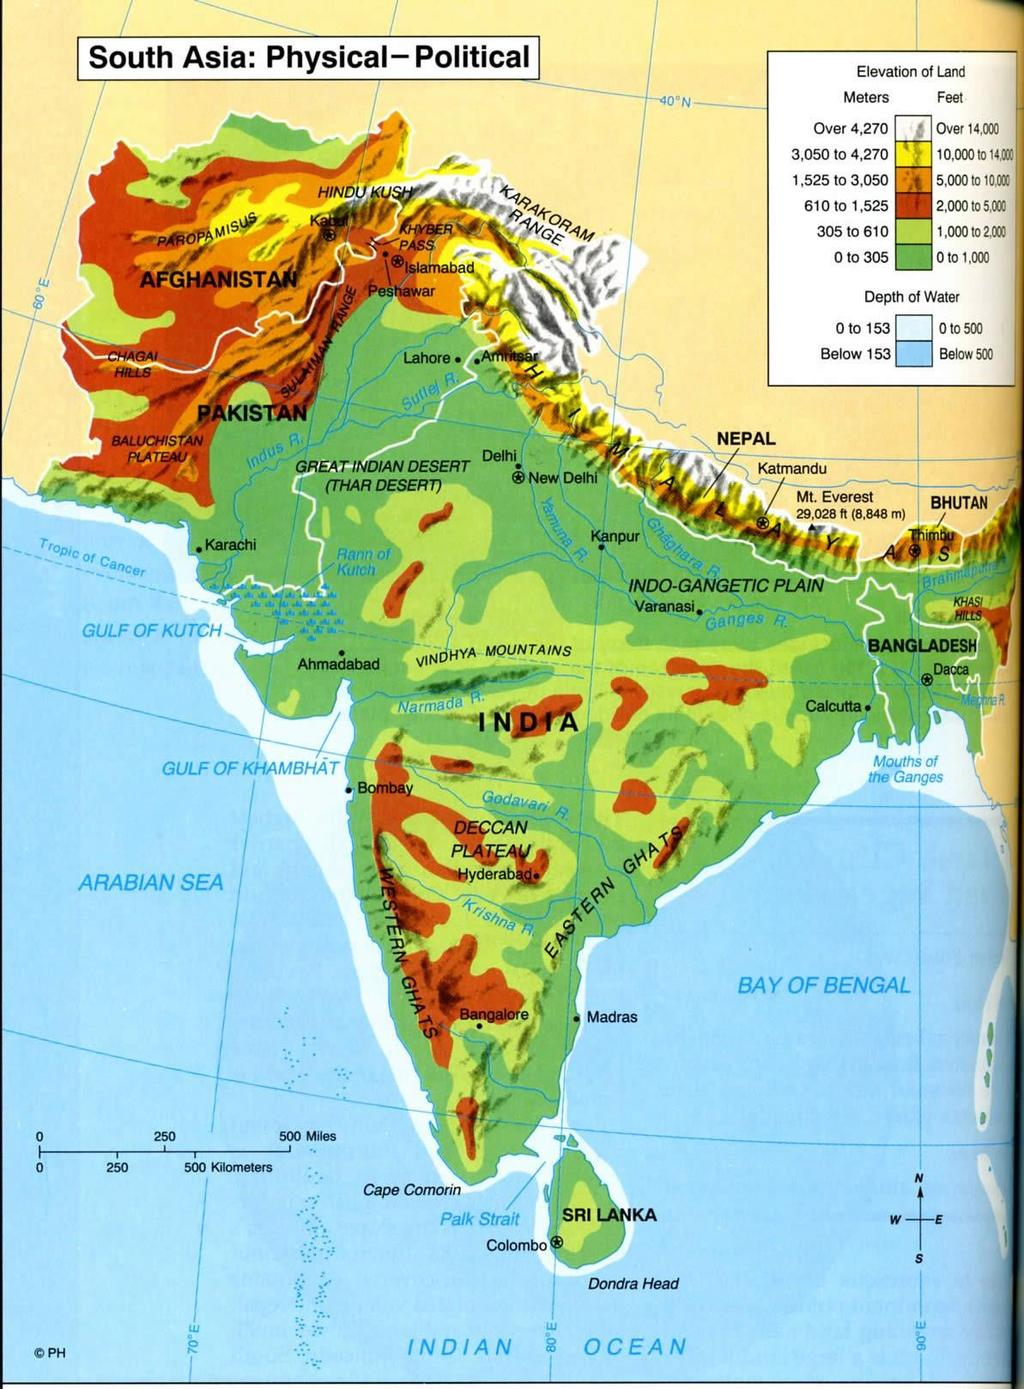 Geography Deccan Plateau, dry, sparsely populated